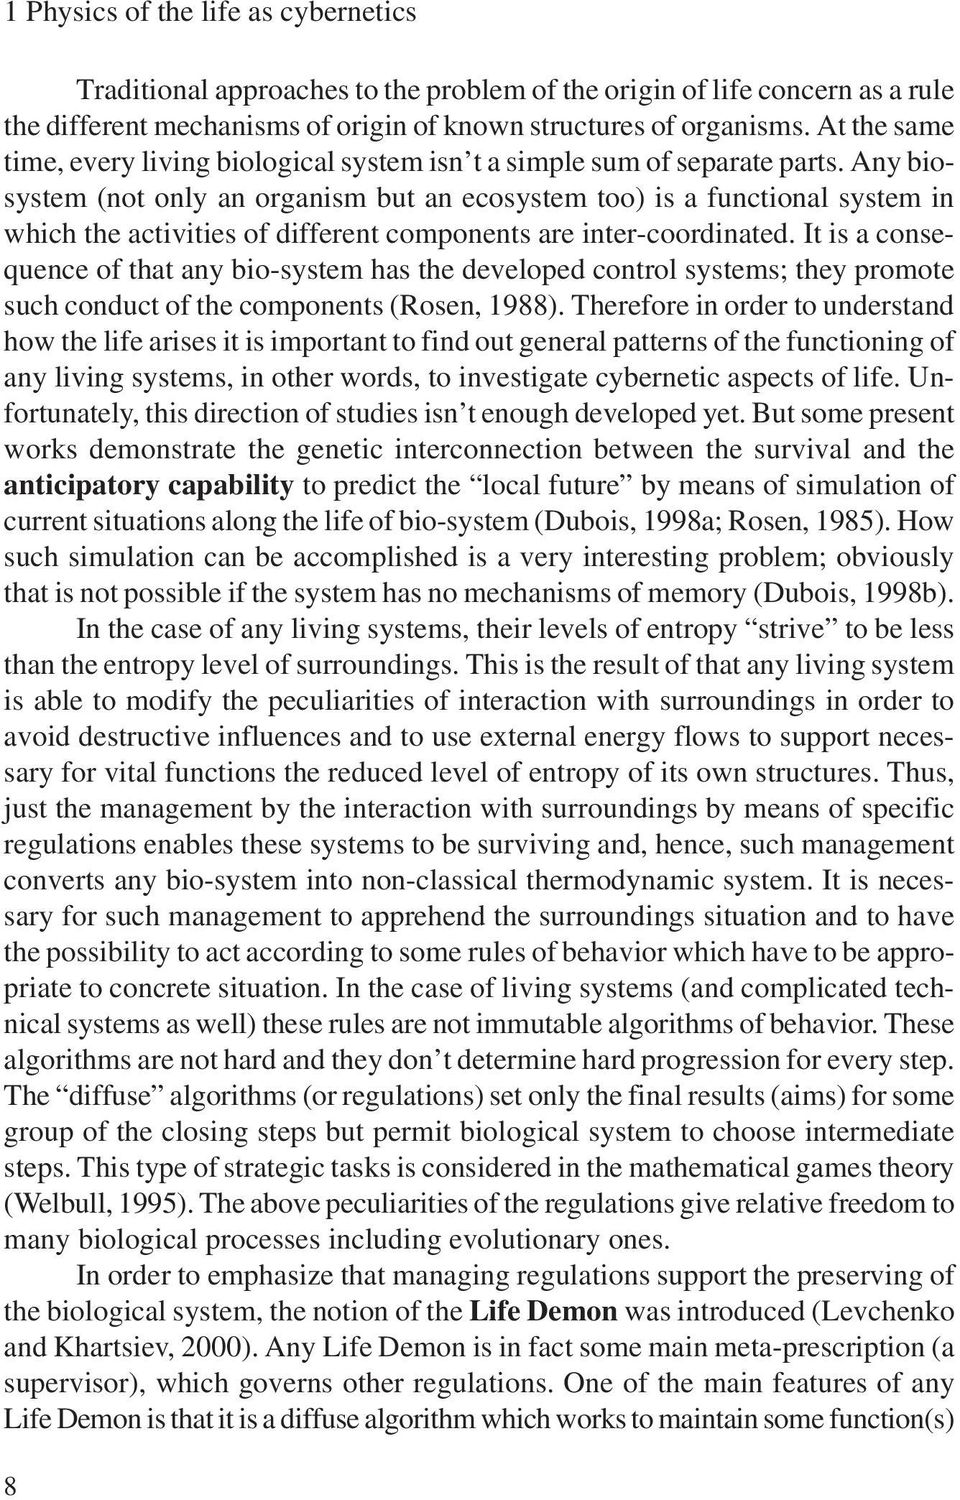 Any biosystem (not only an organism but an ecosystem too) is a functional system in which the activities of different components are inter-coordinated.